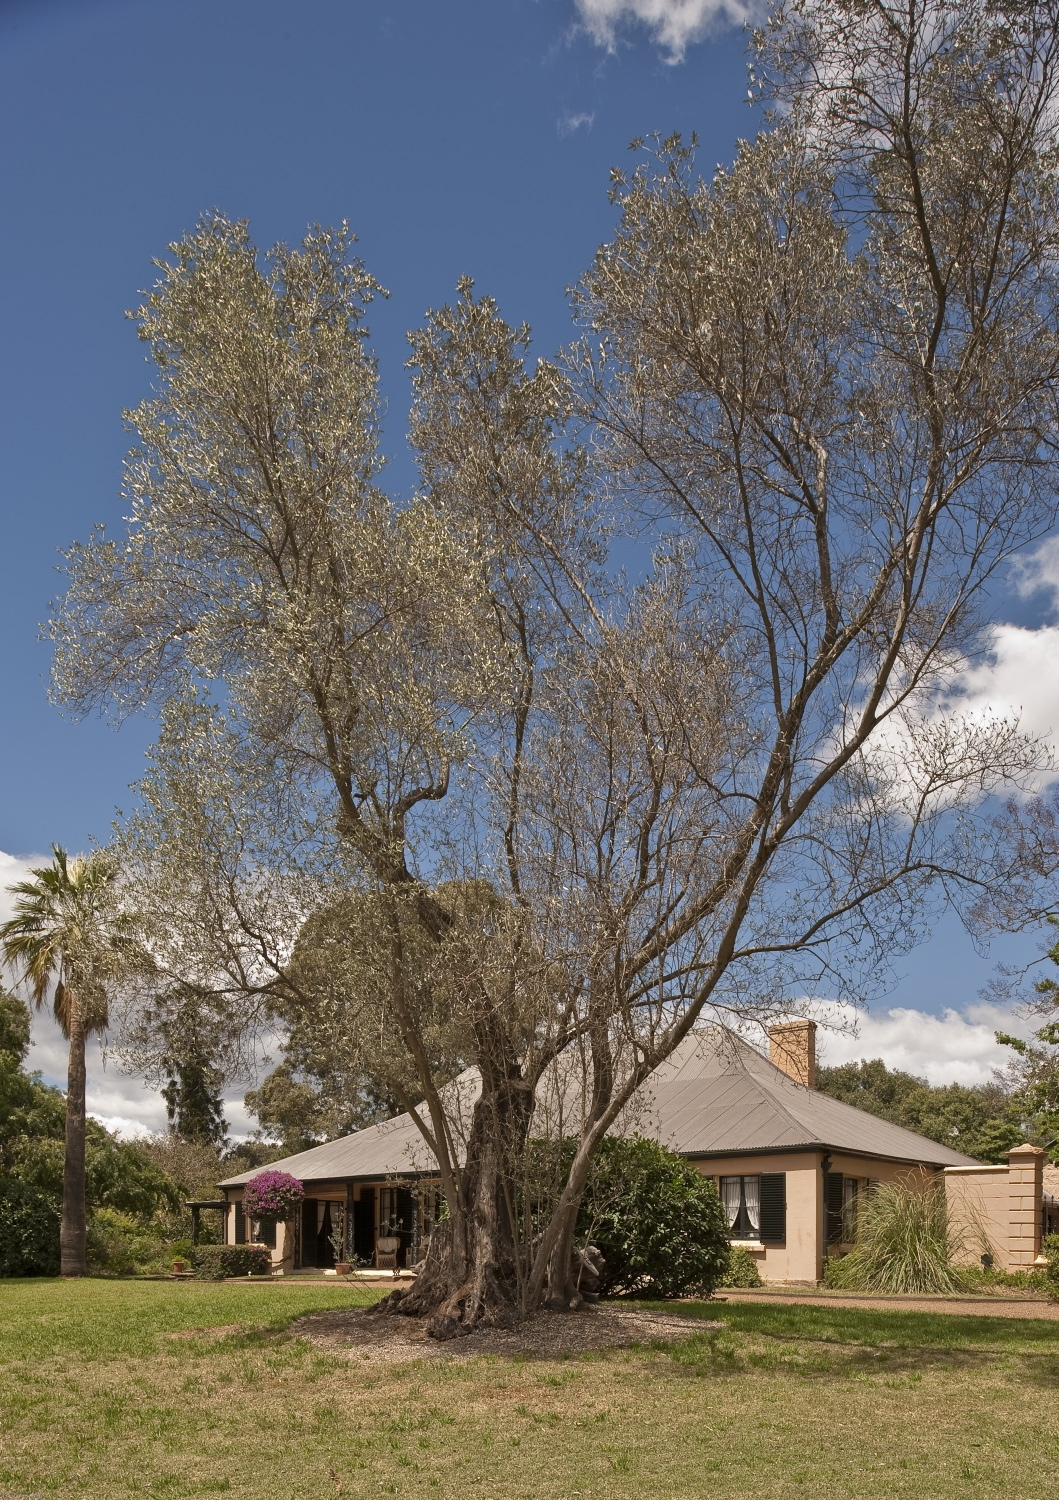 Photograph of an olive tree in front of the Elizabeth Farm homestead